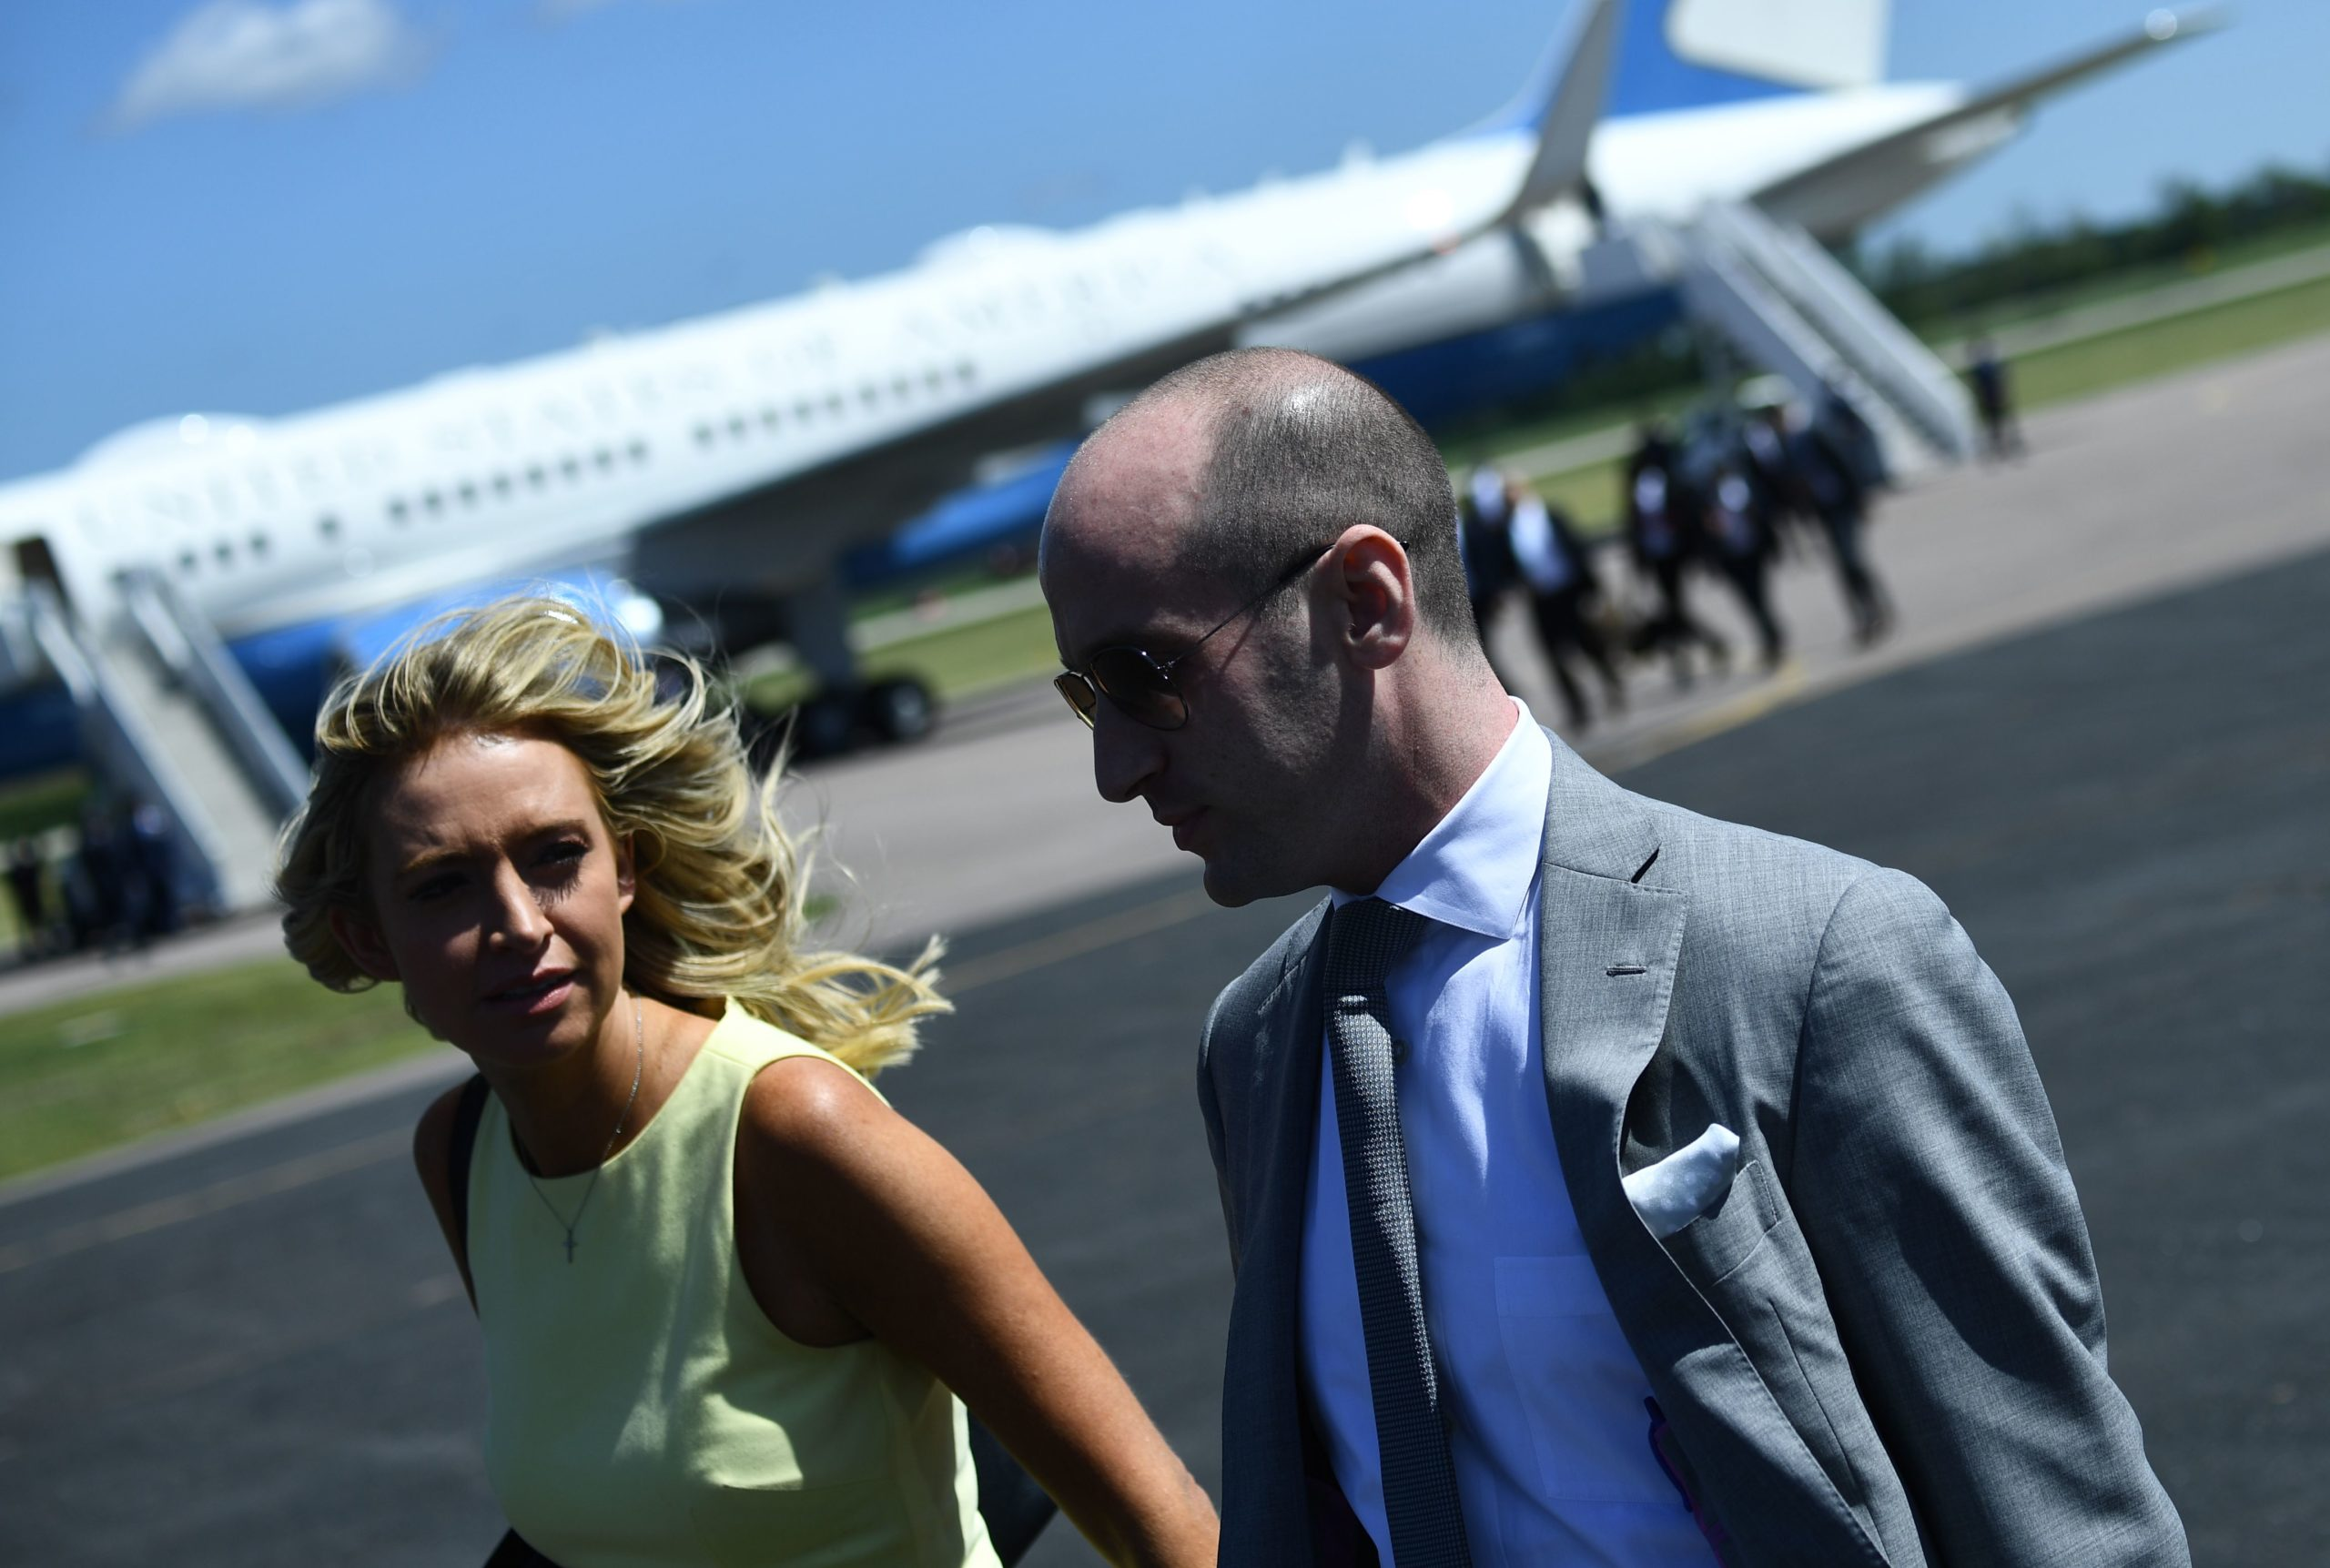 White House Press Secretary Kayleigh McEnany (L) and presidential advisor Stephen Miller walk on the tarmac before US President Donald Trump steps off Airforce One on August 17, 2020 in Mankato, Minnesota, to deliver remarks on the economy. (Photo by BRENDAN SMIALOWSKI/AFP via Getty Images)